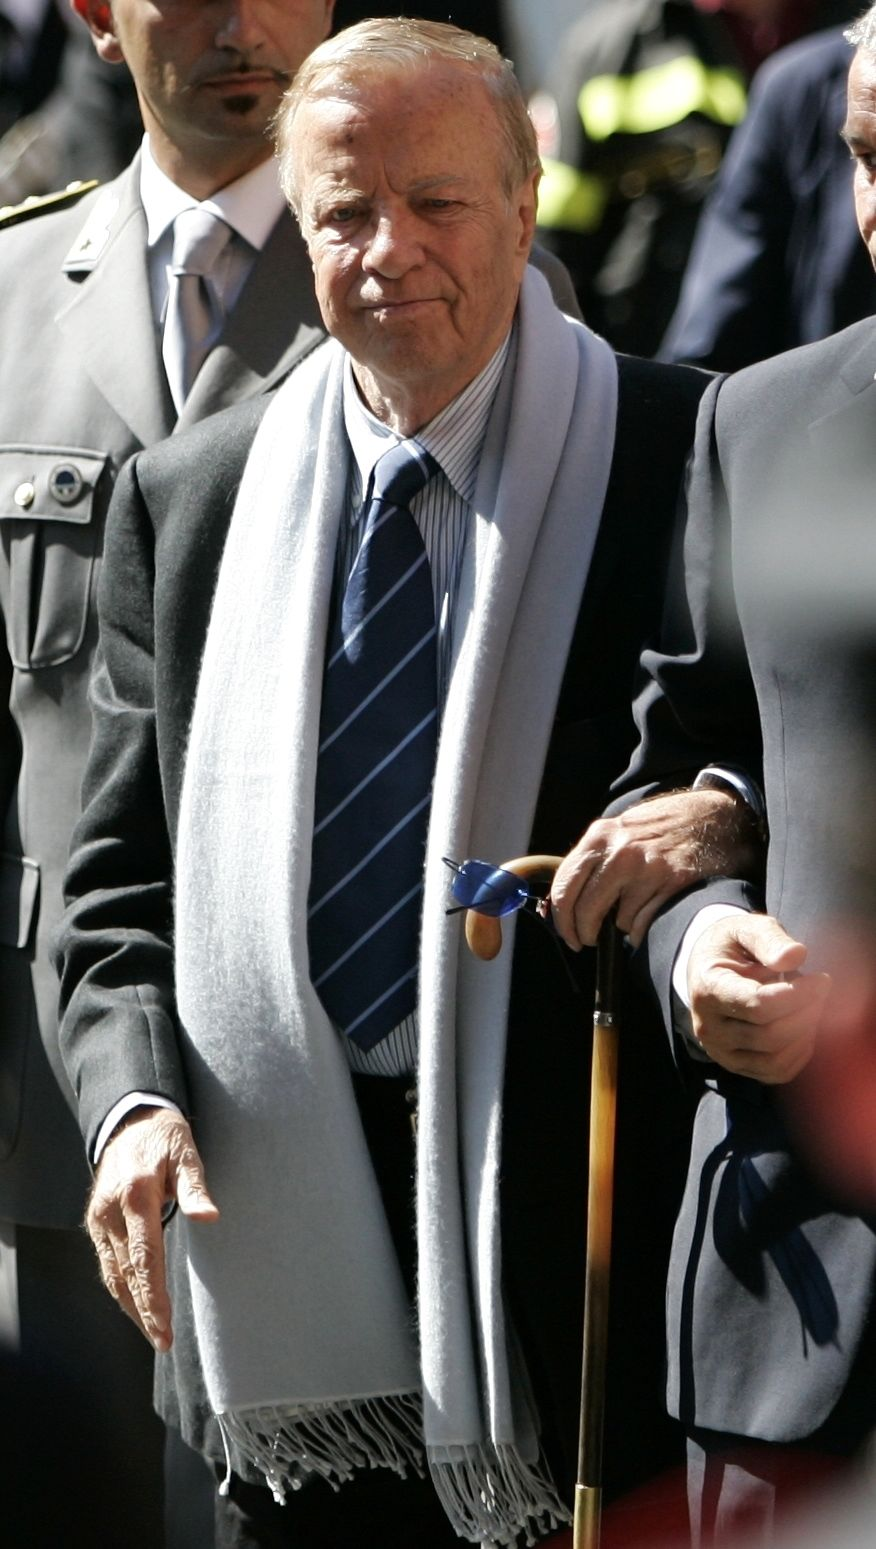 FILE - In this Saturday, Sept. 8, 2007 file photo, Italian movie director Franco Zeffirelli arrives at the funeral service of late Italian tenor Luciano Pavarotti in Modena's Duomo Cathedral, Modena, Italy. (AP Photo/Gregorio Borgia, File)